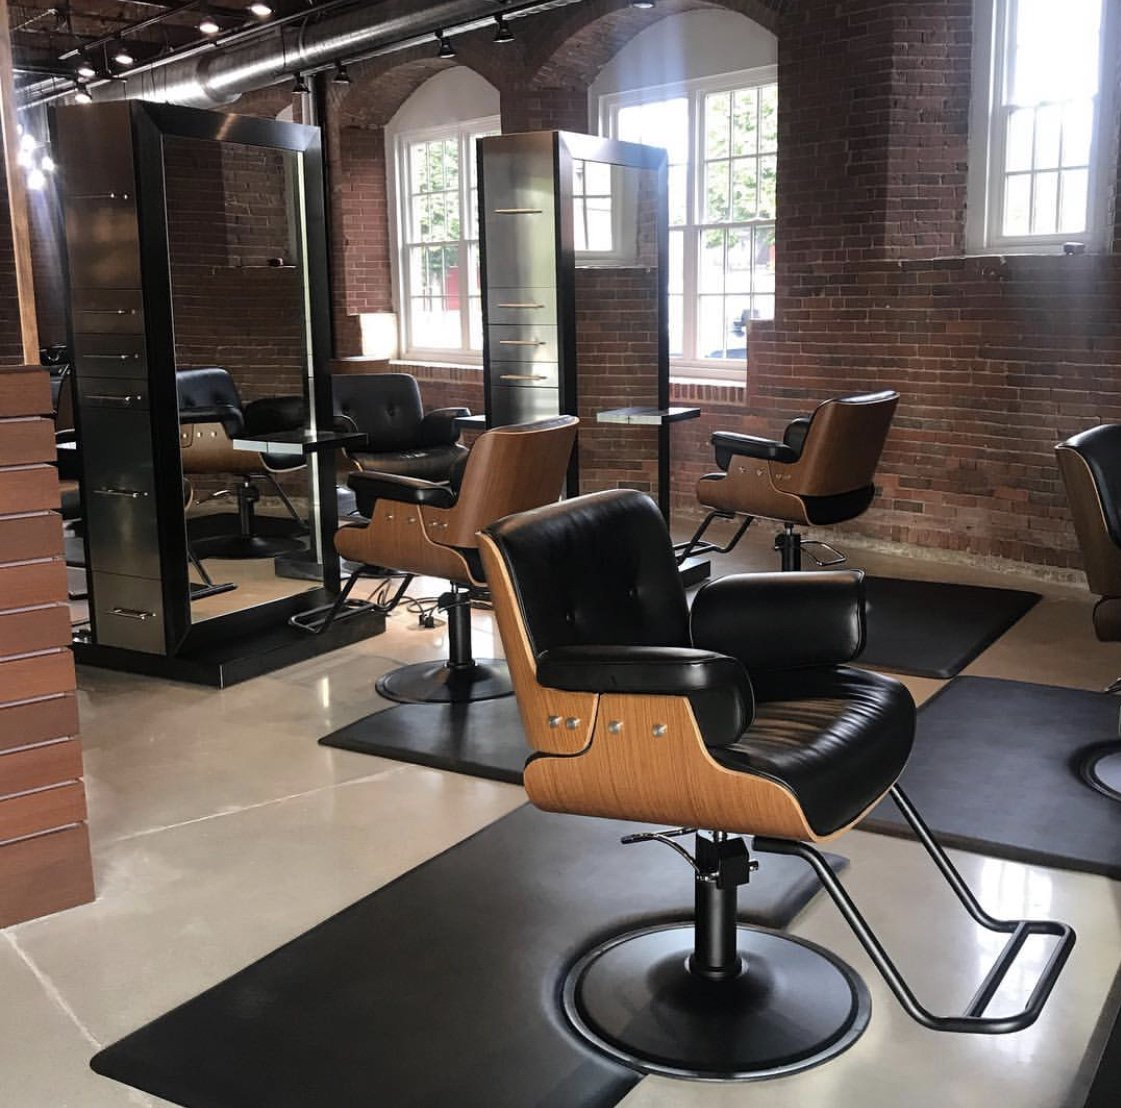 Minerva Beauty On Twitter The Sleek Kona Styling Chairs And Icon Stations Perfectly Complement Rustic Vibes At Oomph Salon In